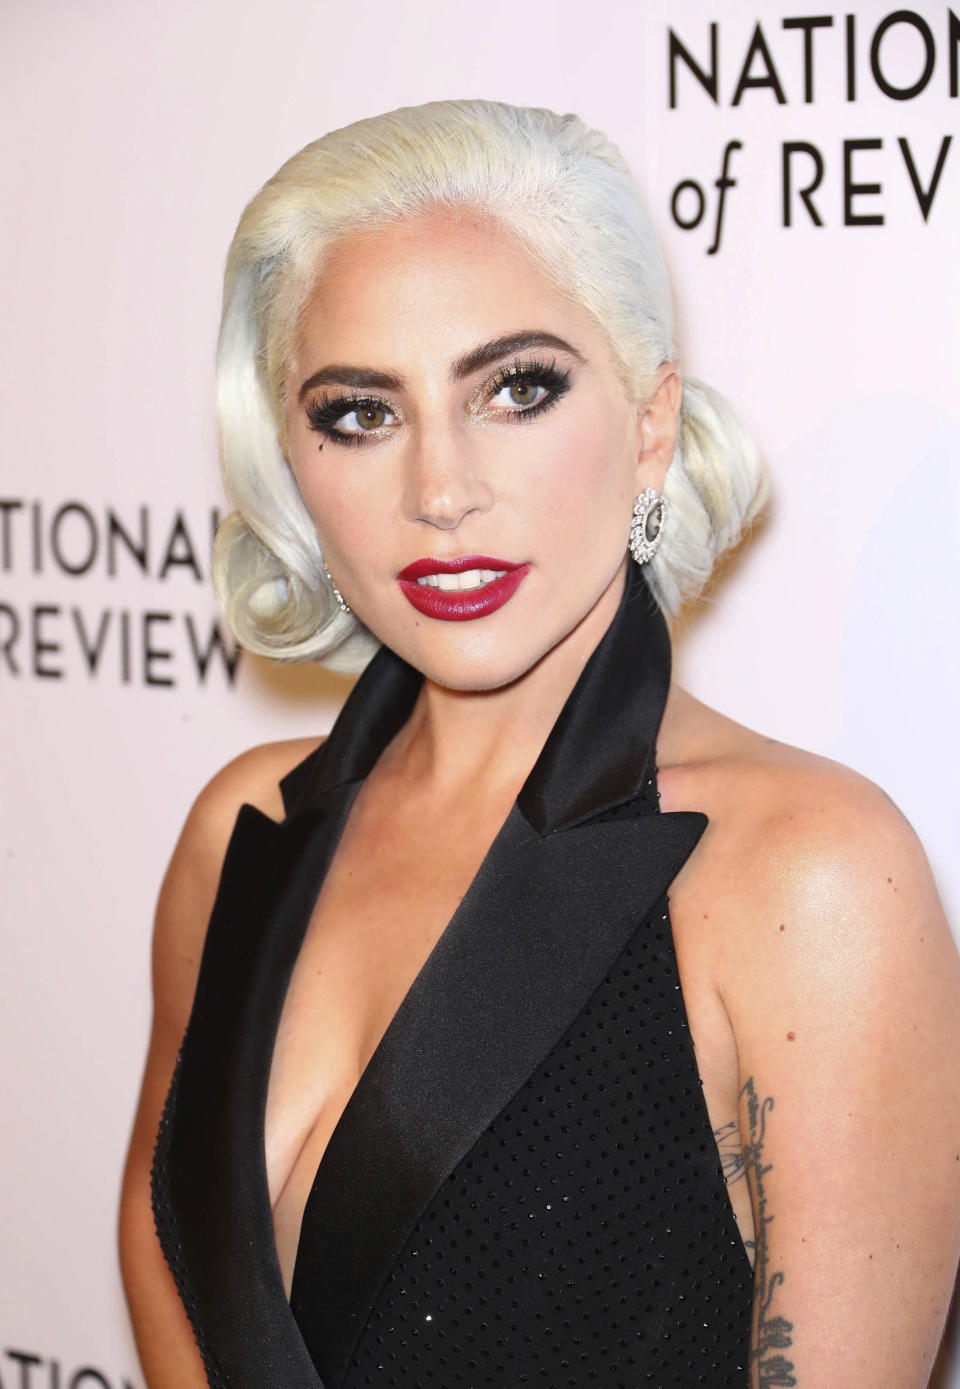 <p>Photo by: zz/John Nacion/STAR MAX/IPx 2019 1/8/19 Lady Gaga at the 2019 National Board of Review (NBR) Gala held on January 8, 2019 in New York City. (NYC)</p>